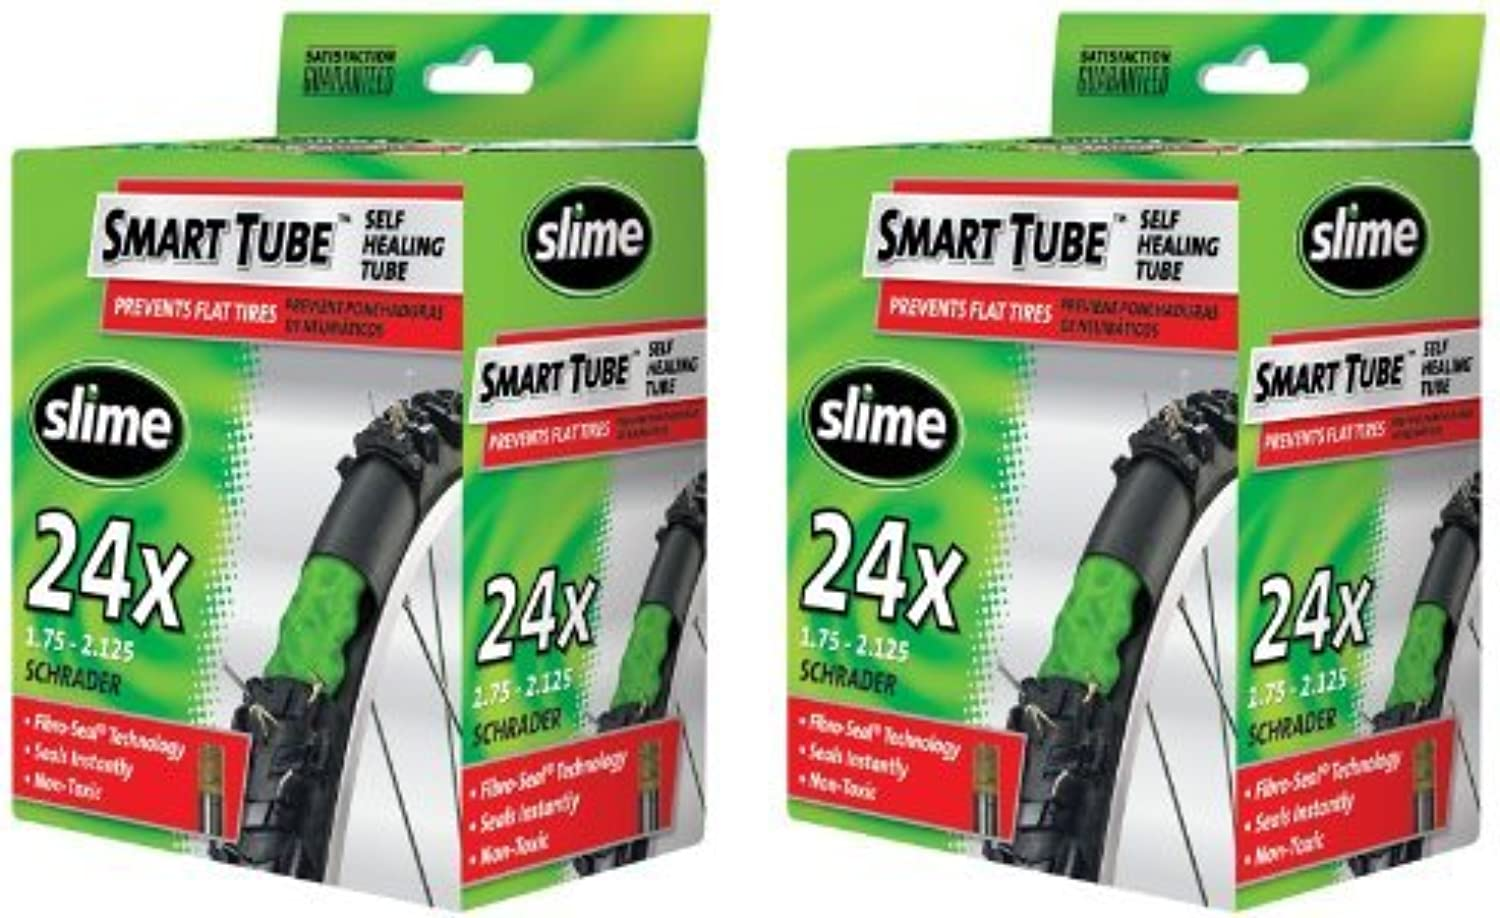 Slime Smart Tube Schrader Valve Bicycle Tube (24 X 1.75 to 2.125), by Slime